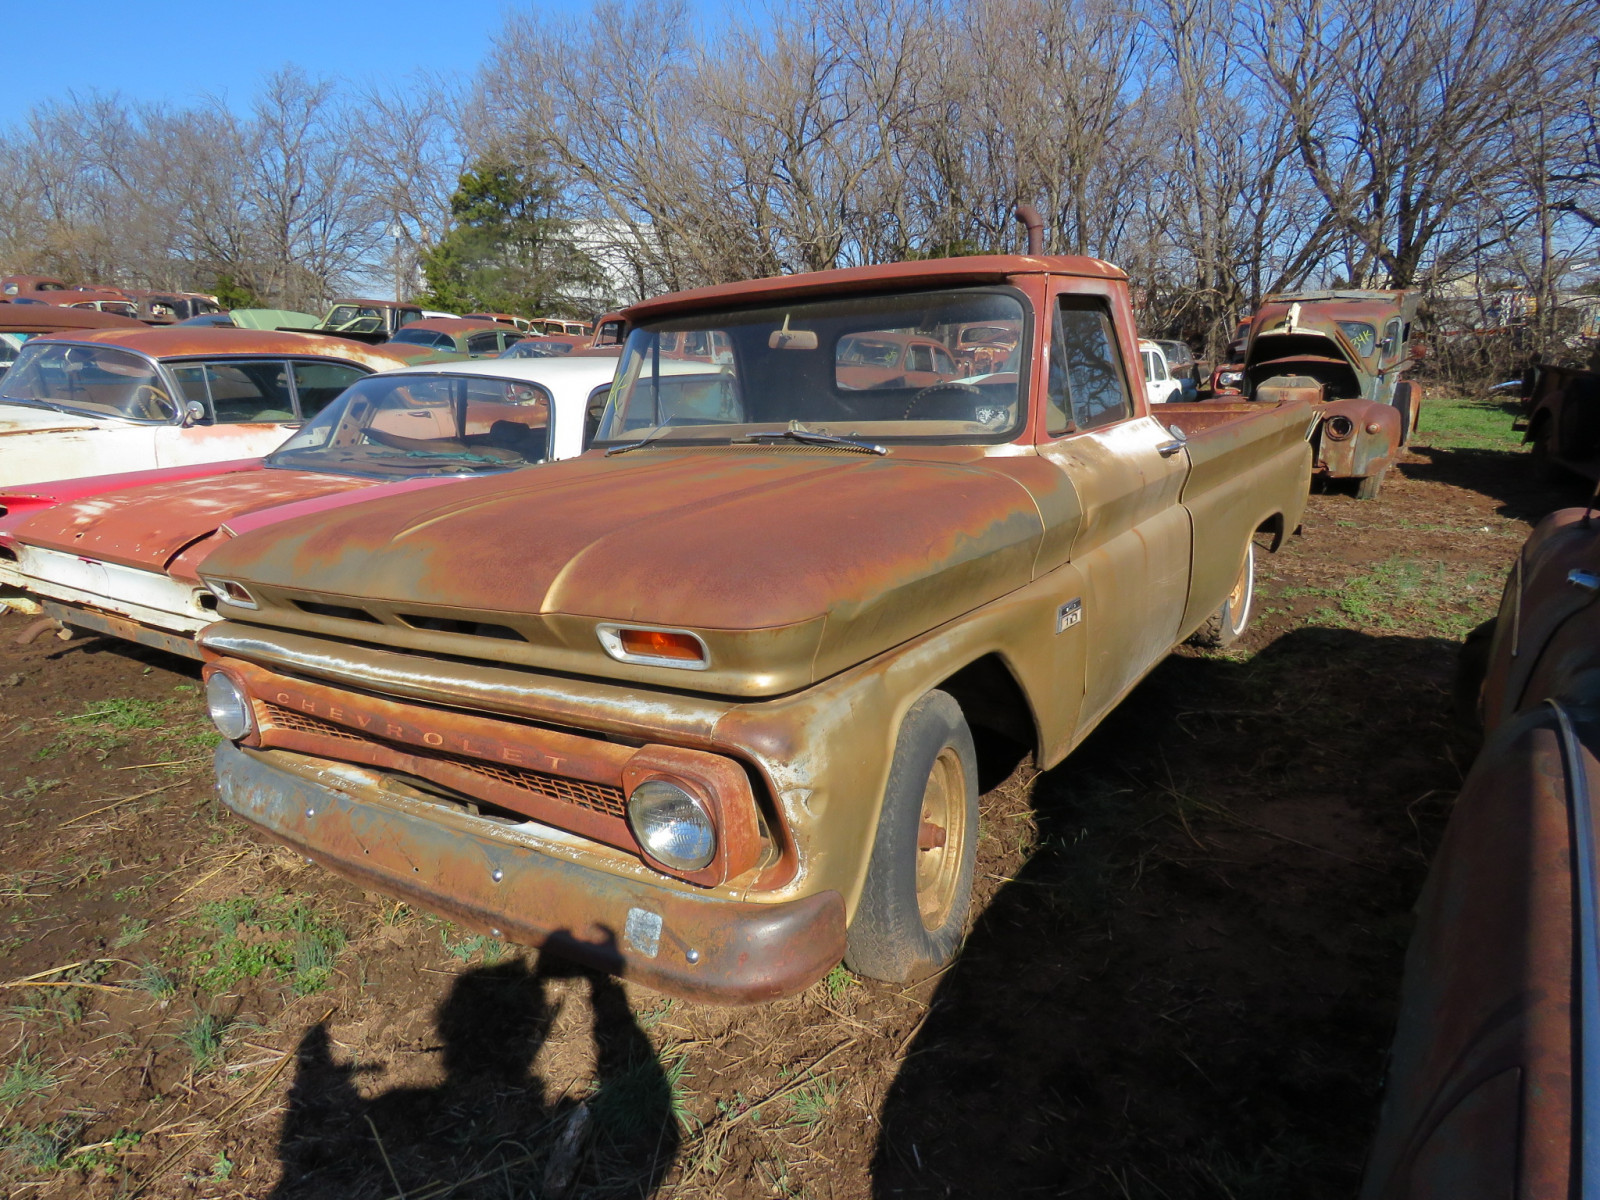 1966 Chevrolet Pickup - Image 2